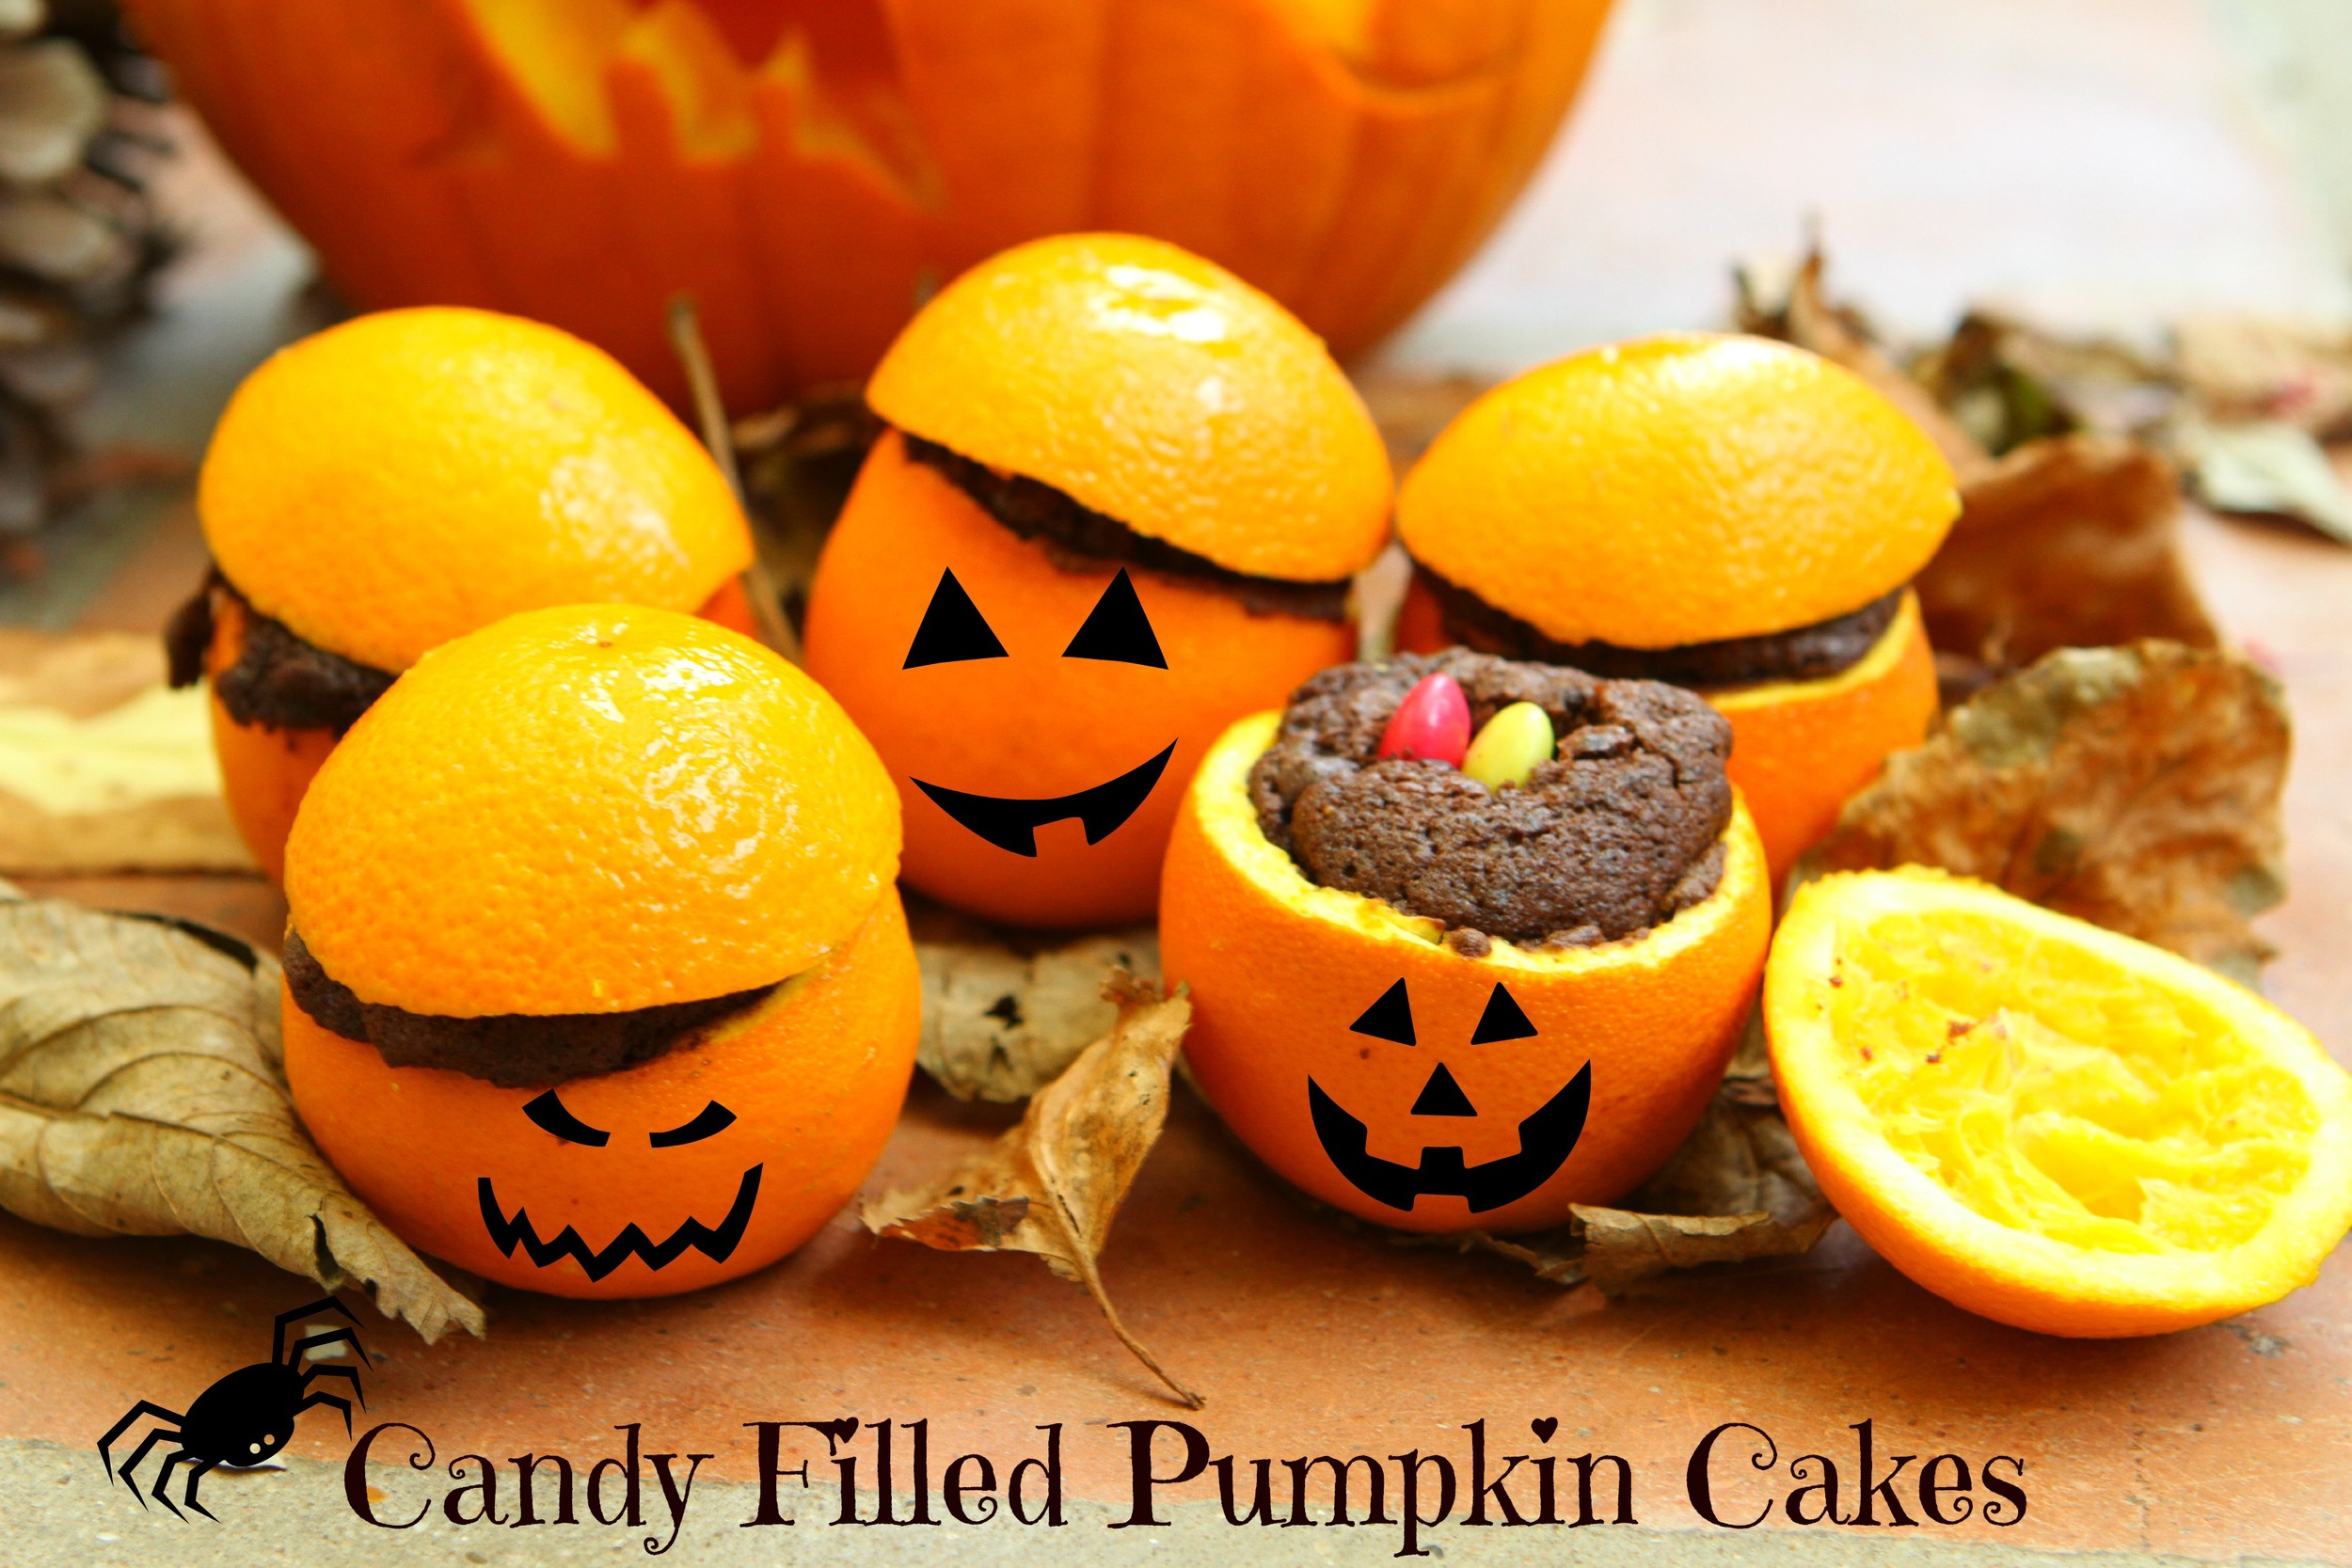 Candy Filled Pumpkin Cakes